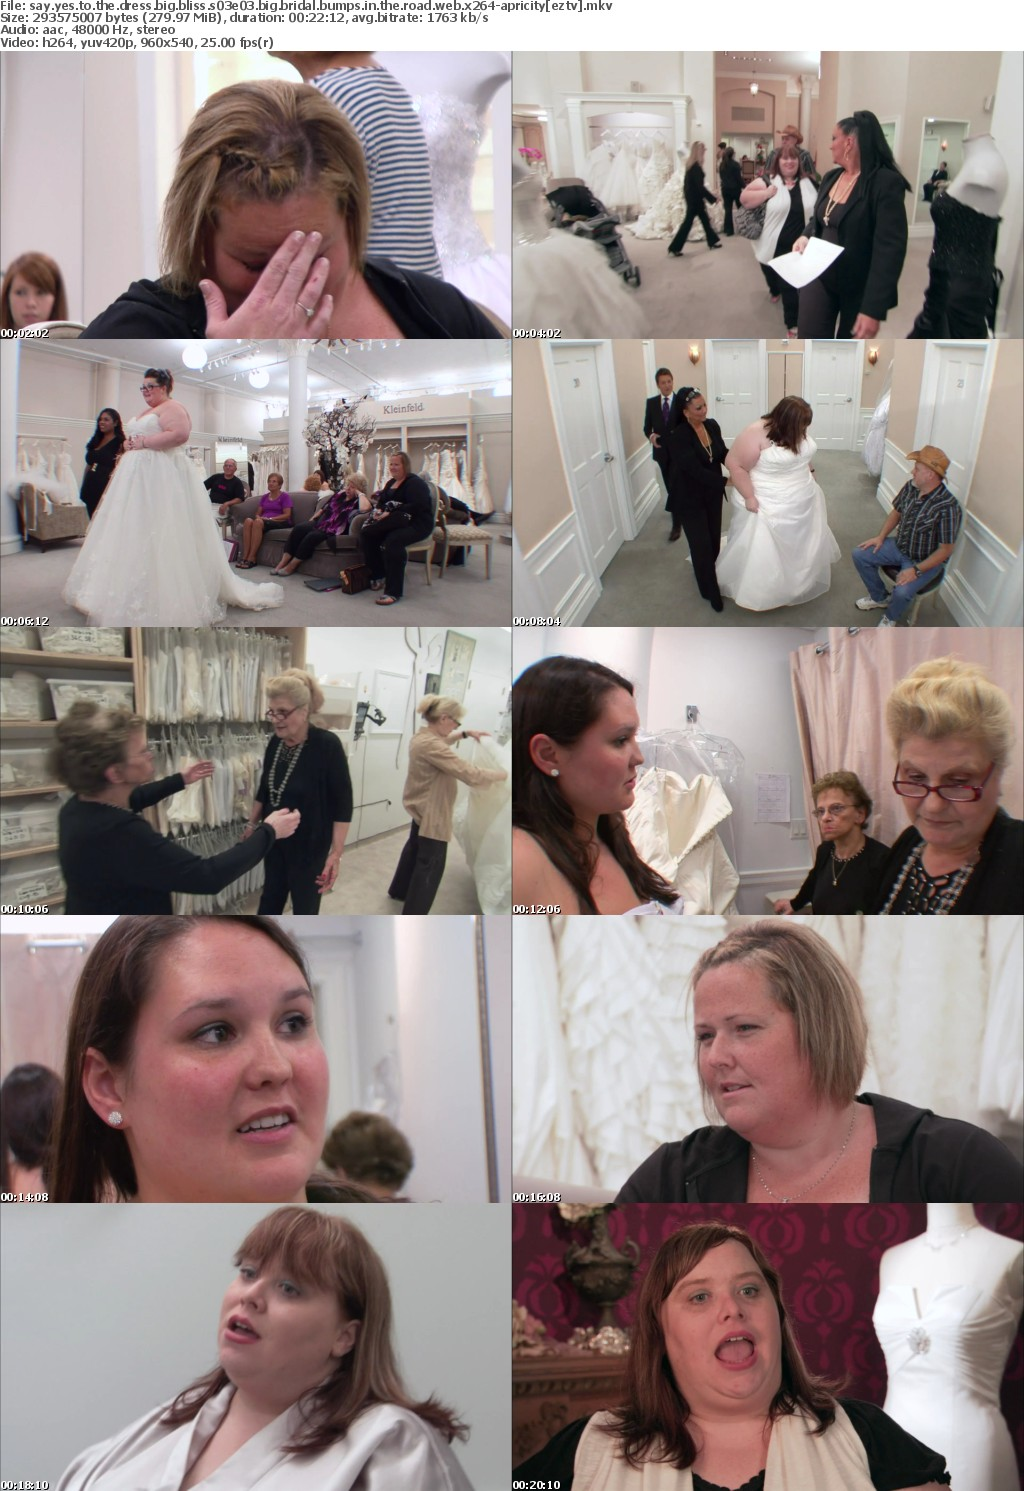 Say Yes to the Dress Big Bliss S03E03 Big Bridal Bumps in the Road WEB x264-APRiCiTY